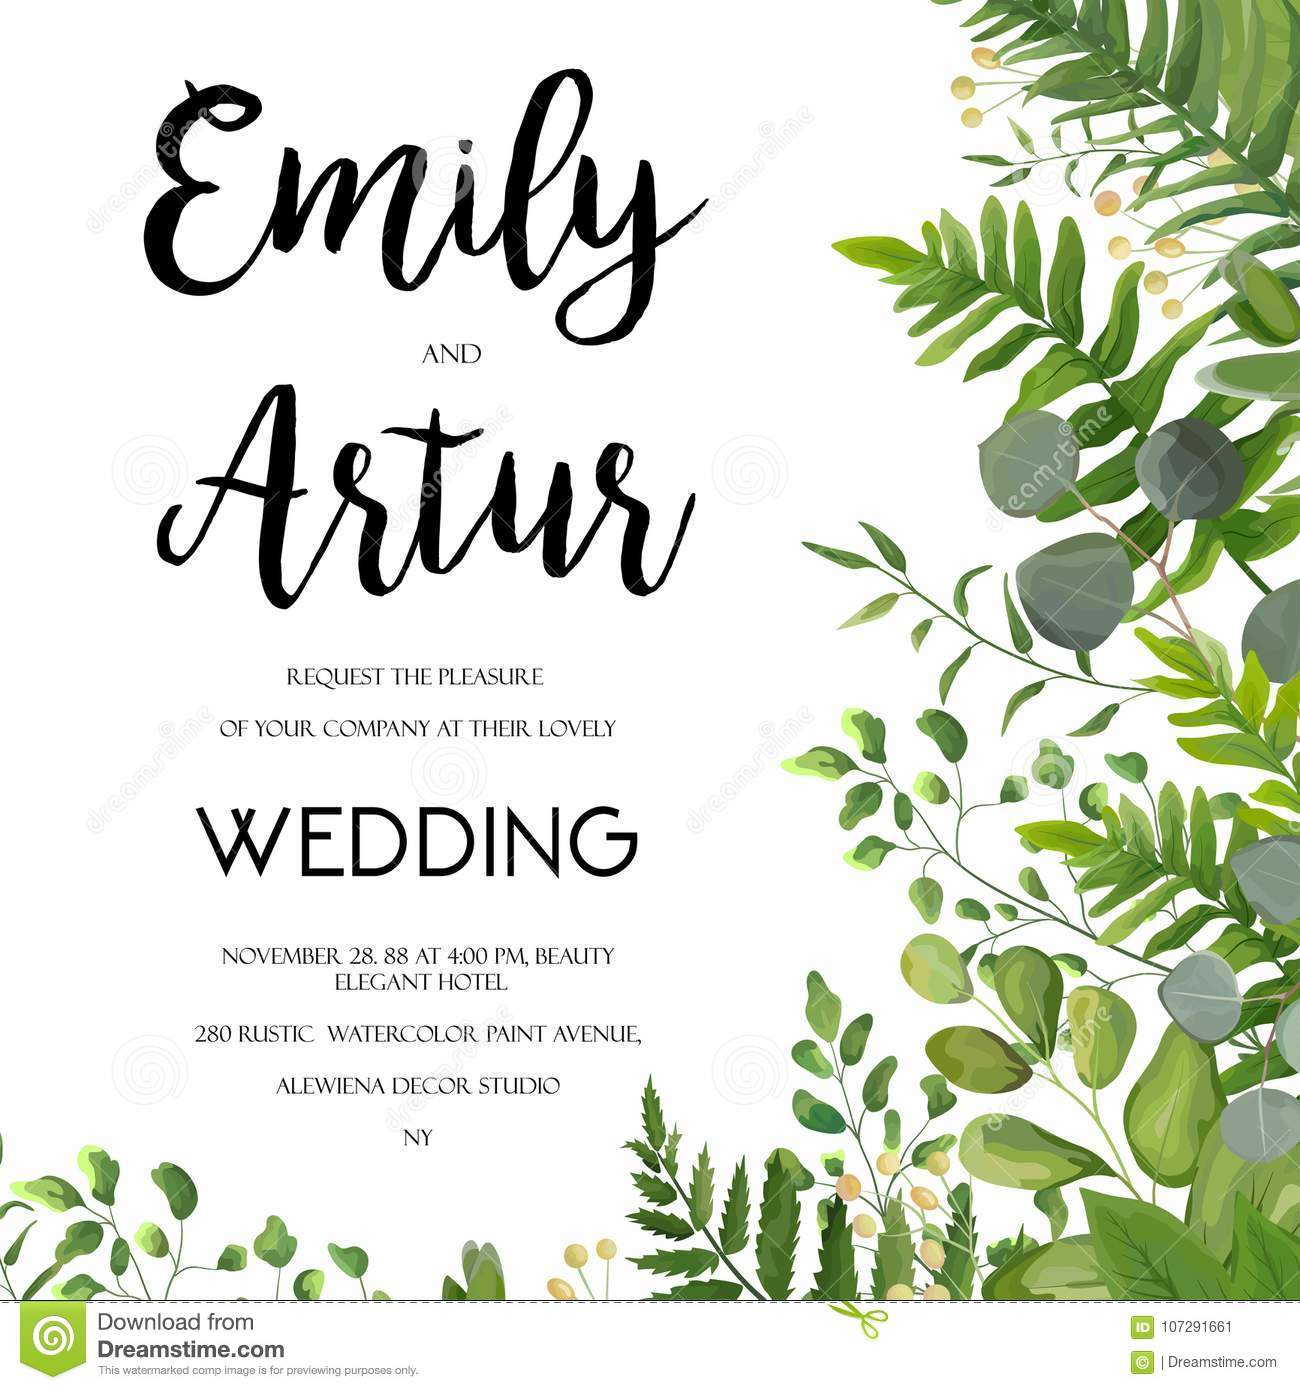 Wedding Invitation Floral Invite Card Design With Green